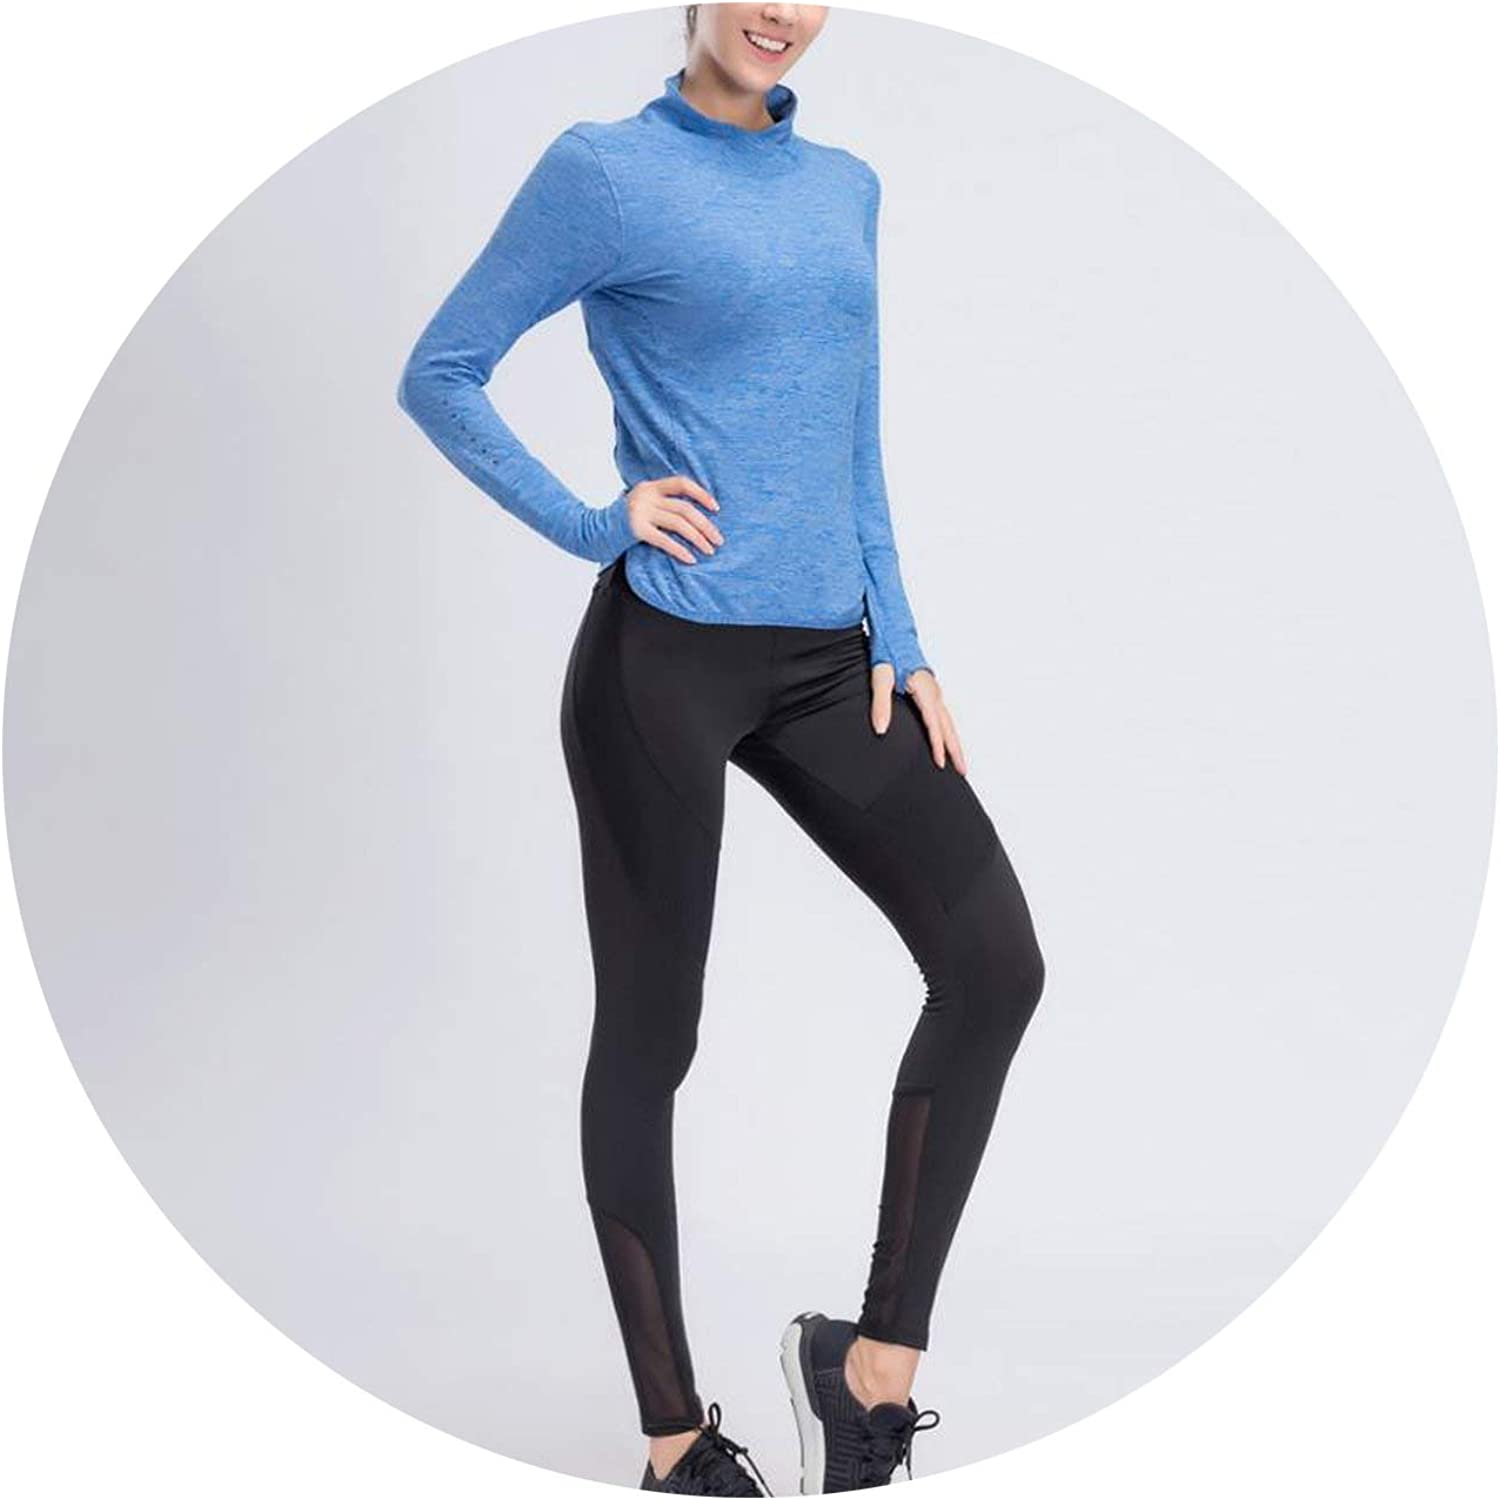 Talk about heaven 2019 New Yoga Sets Women Gym Clothes Breathable Fitness Sports Shirt + Running Pants Yoga Set